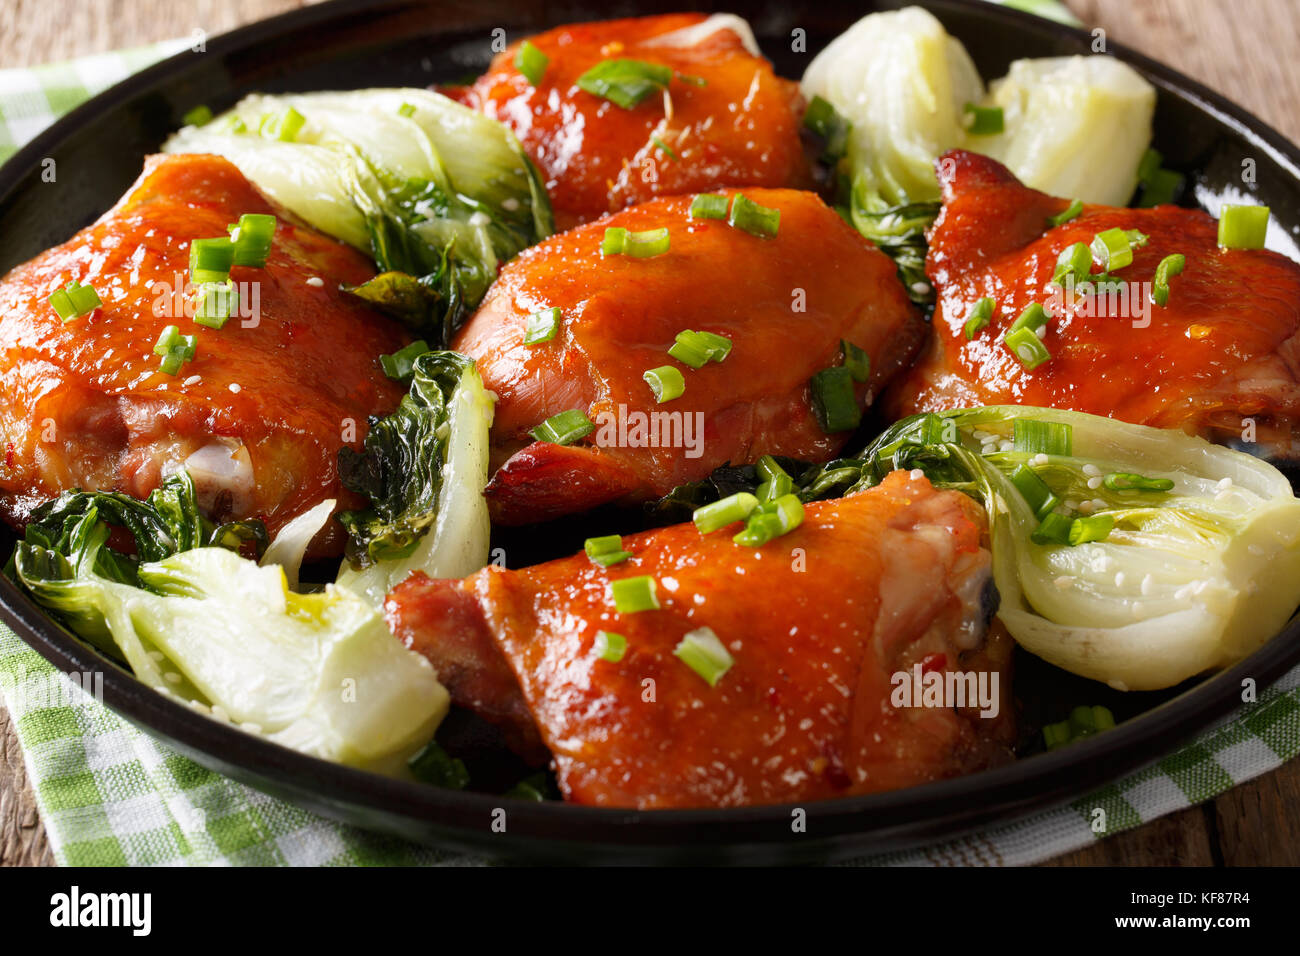 Delicious fried chicken thighs with bok choy and green onions close-up on a plate. horizontal - Stock Image